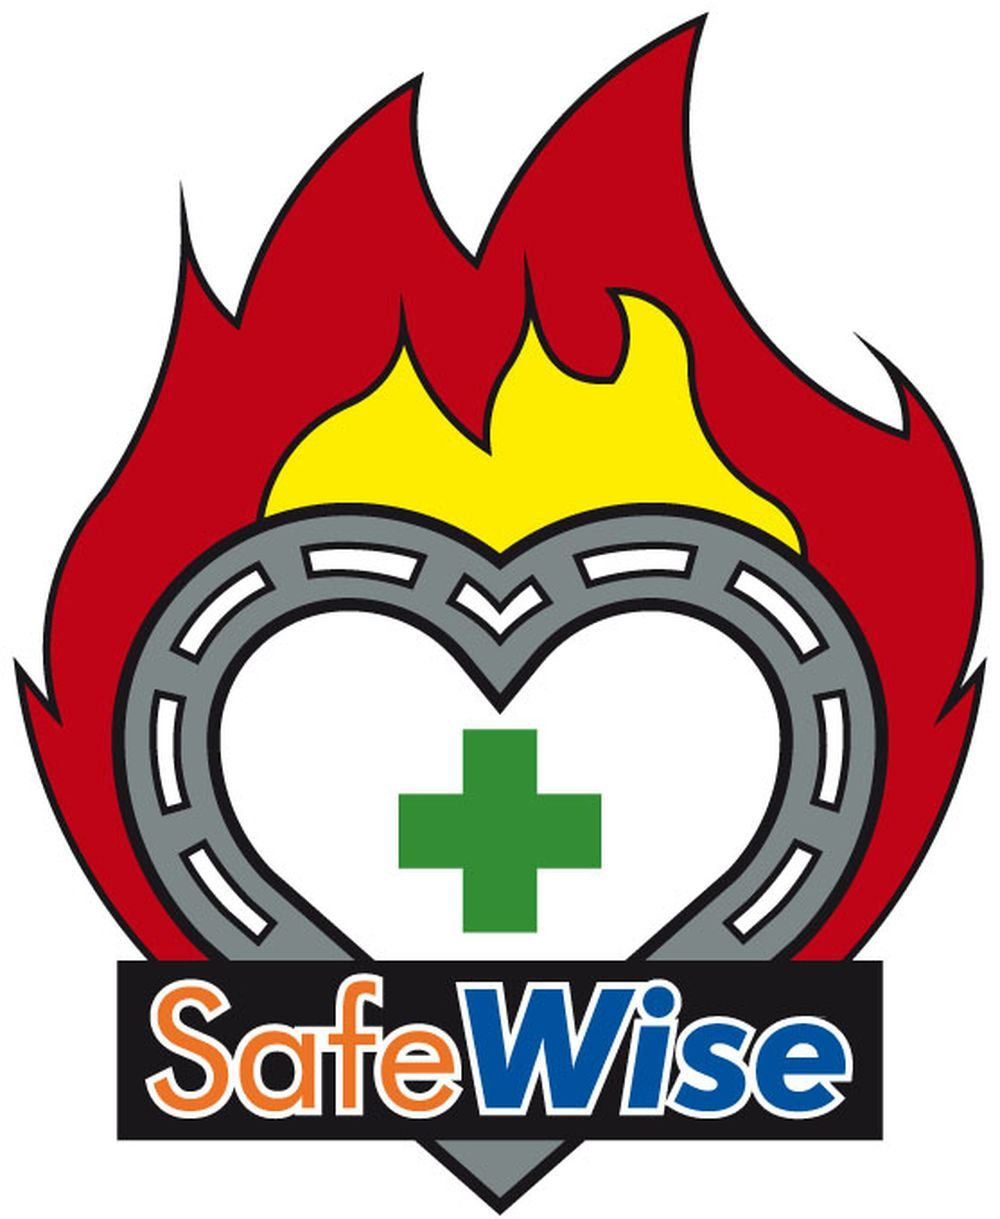 Safewise has been given a funding boost by the Big Lottery Fund